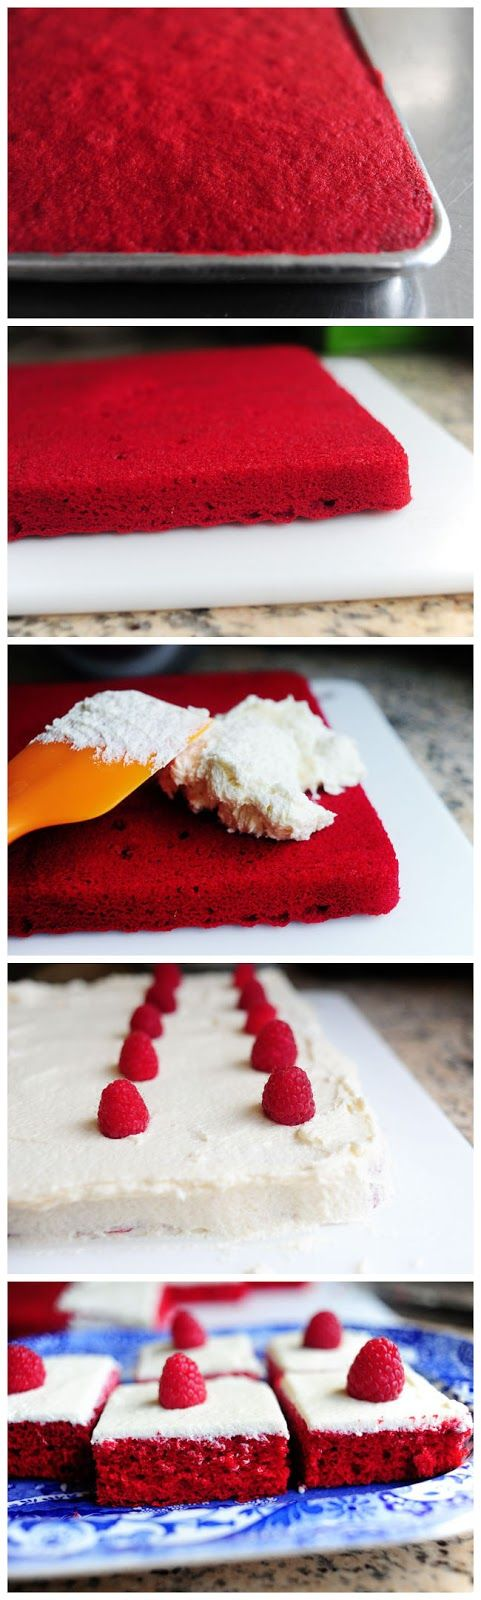 Red Velvet Sheet Cake | Recipes to Try | Pinterest ...